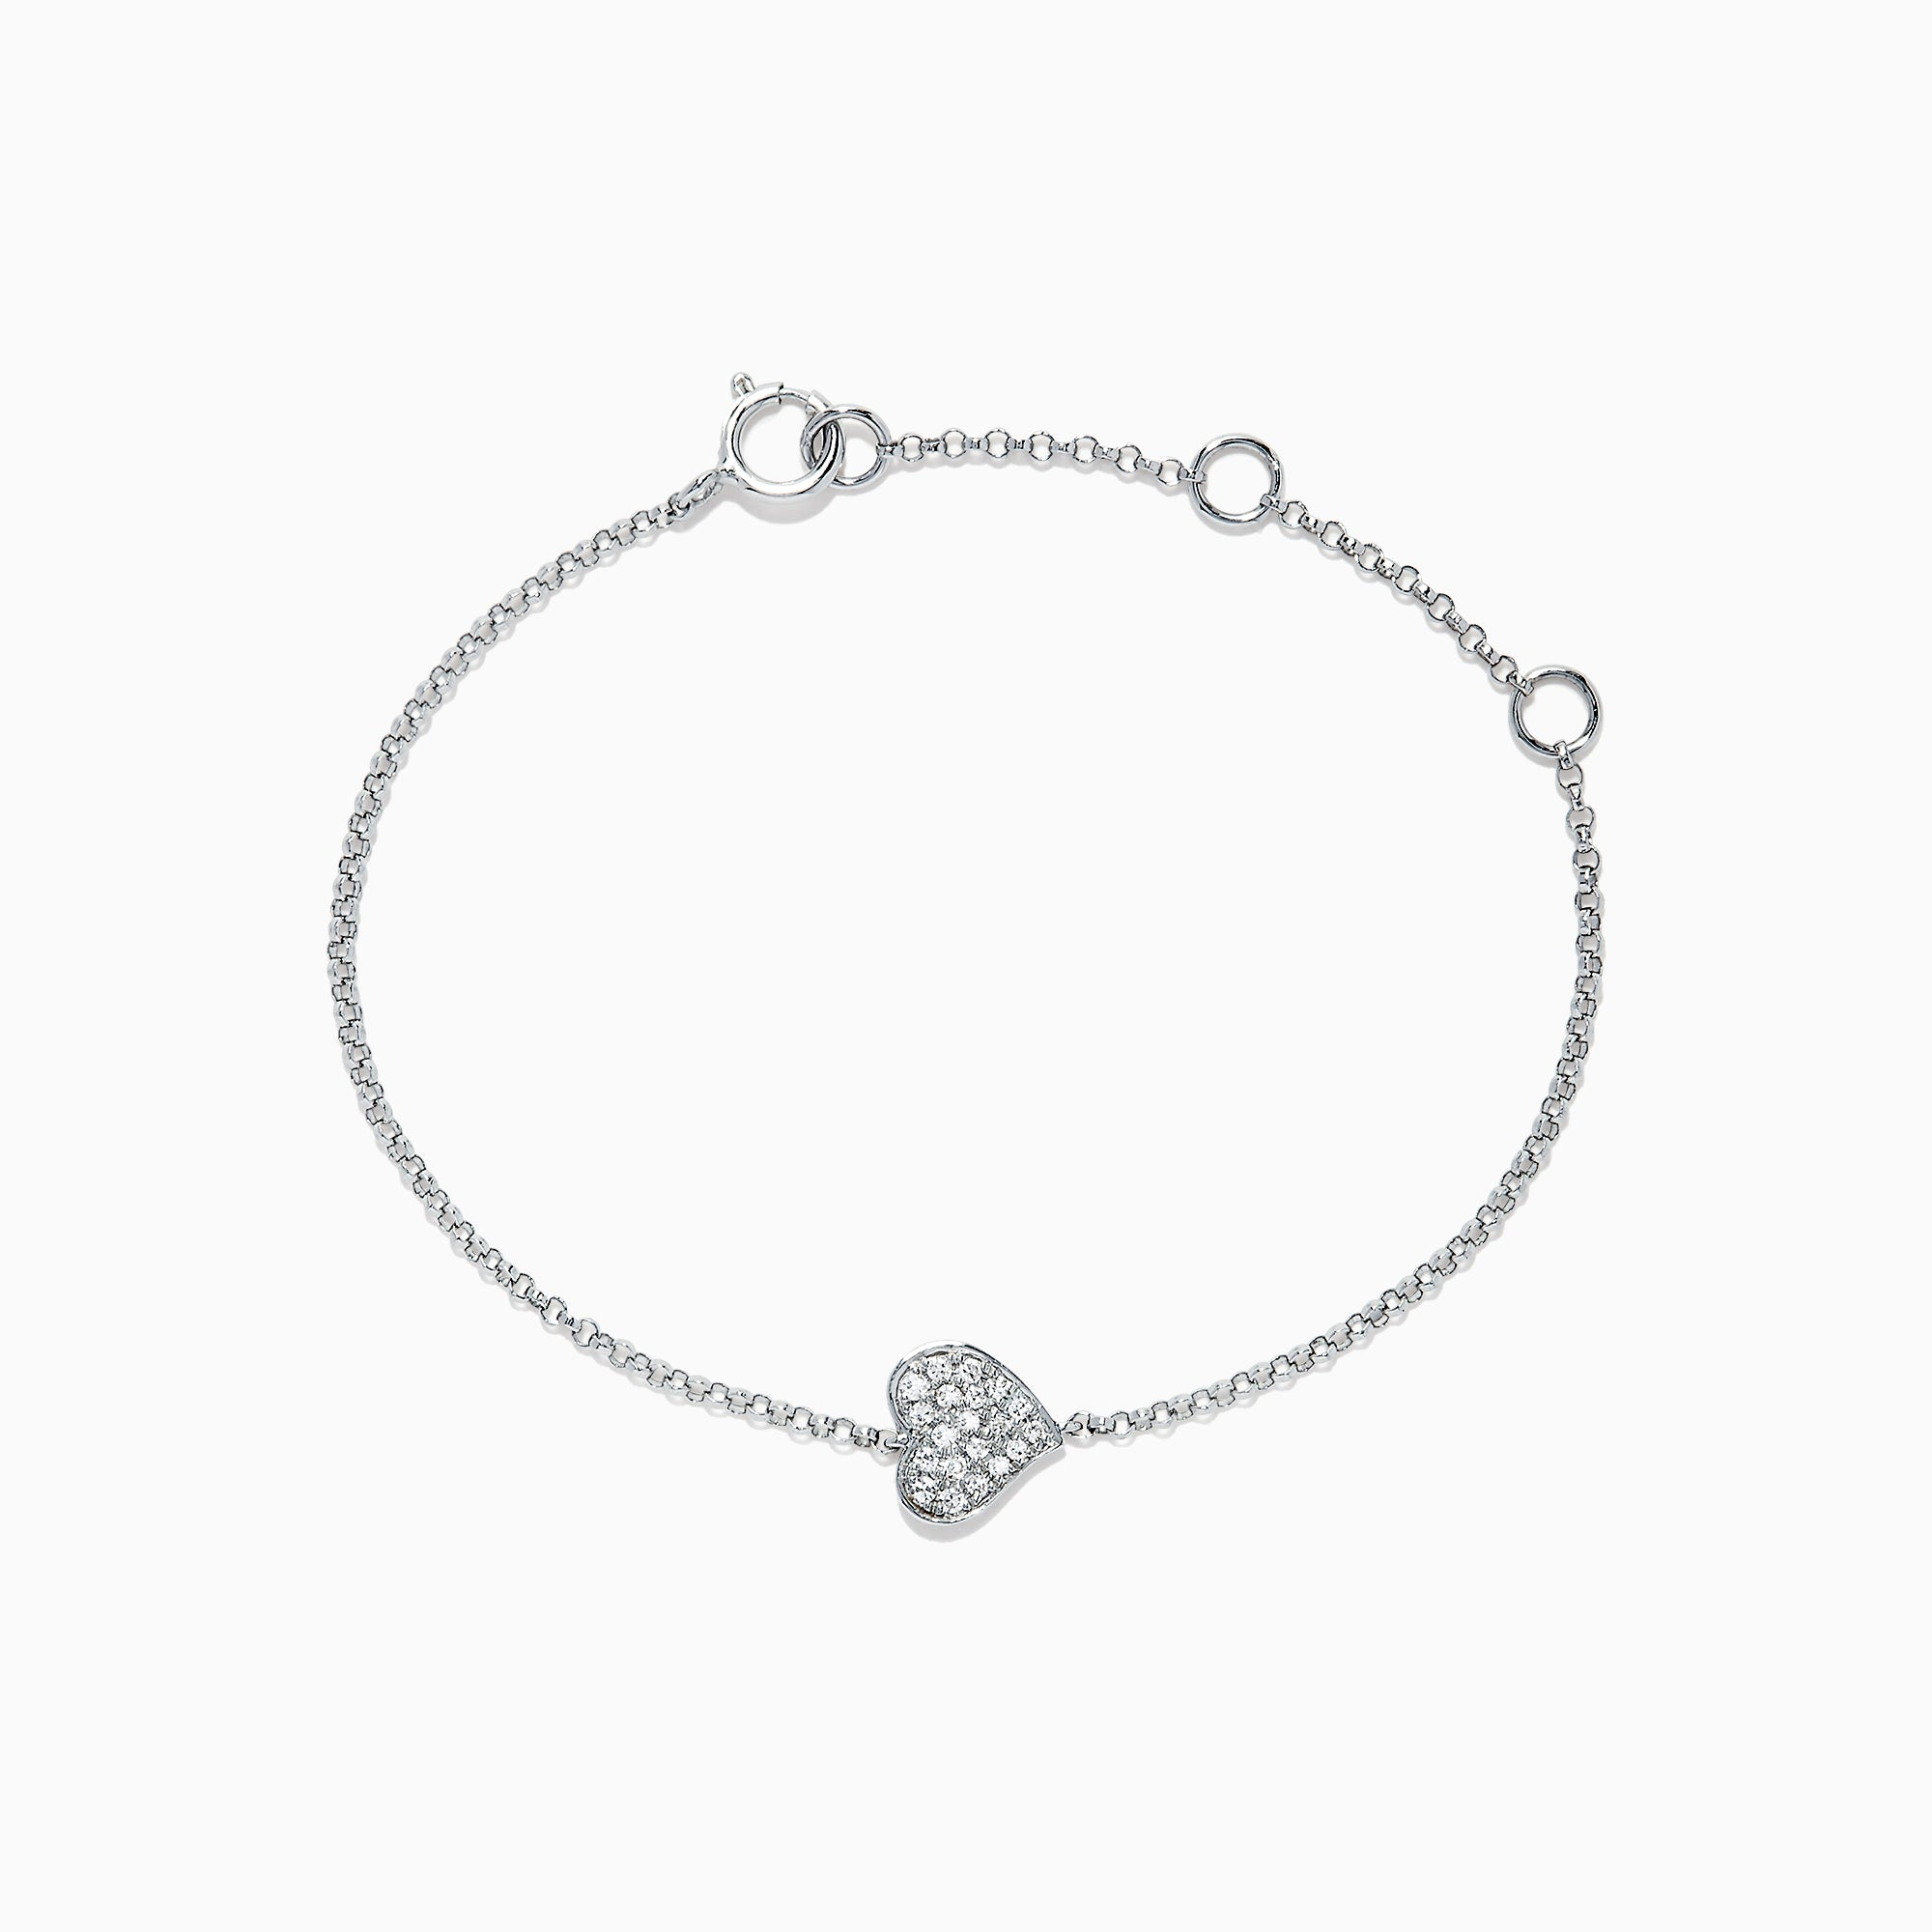 Effy Kidz 14K White Gold Diamond Heart Bracelet, 0.07 TCW